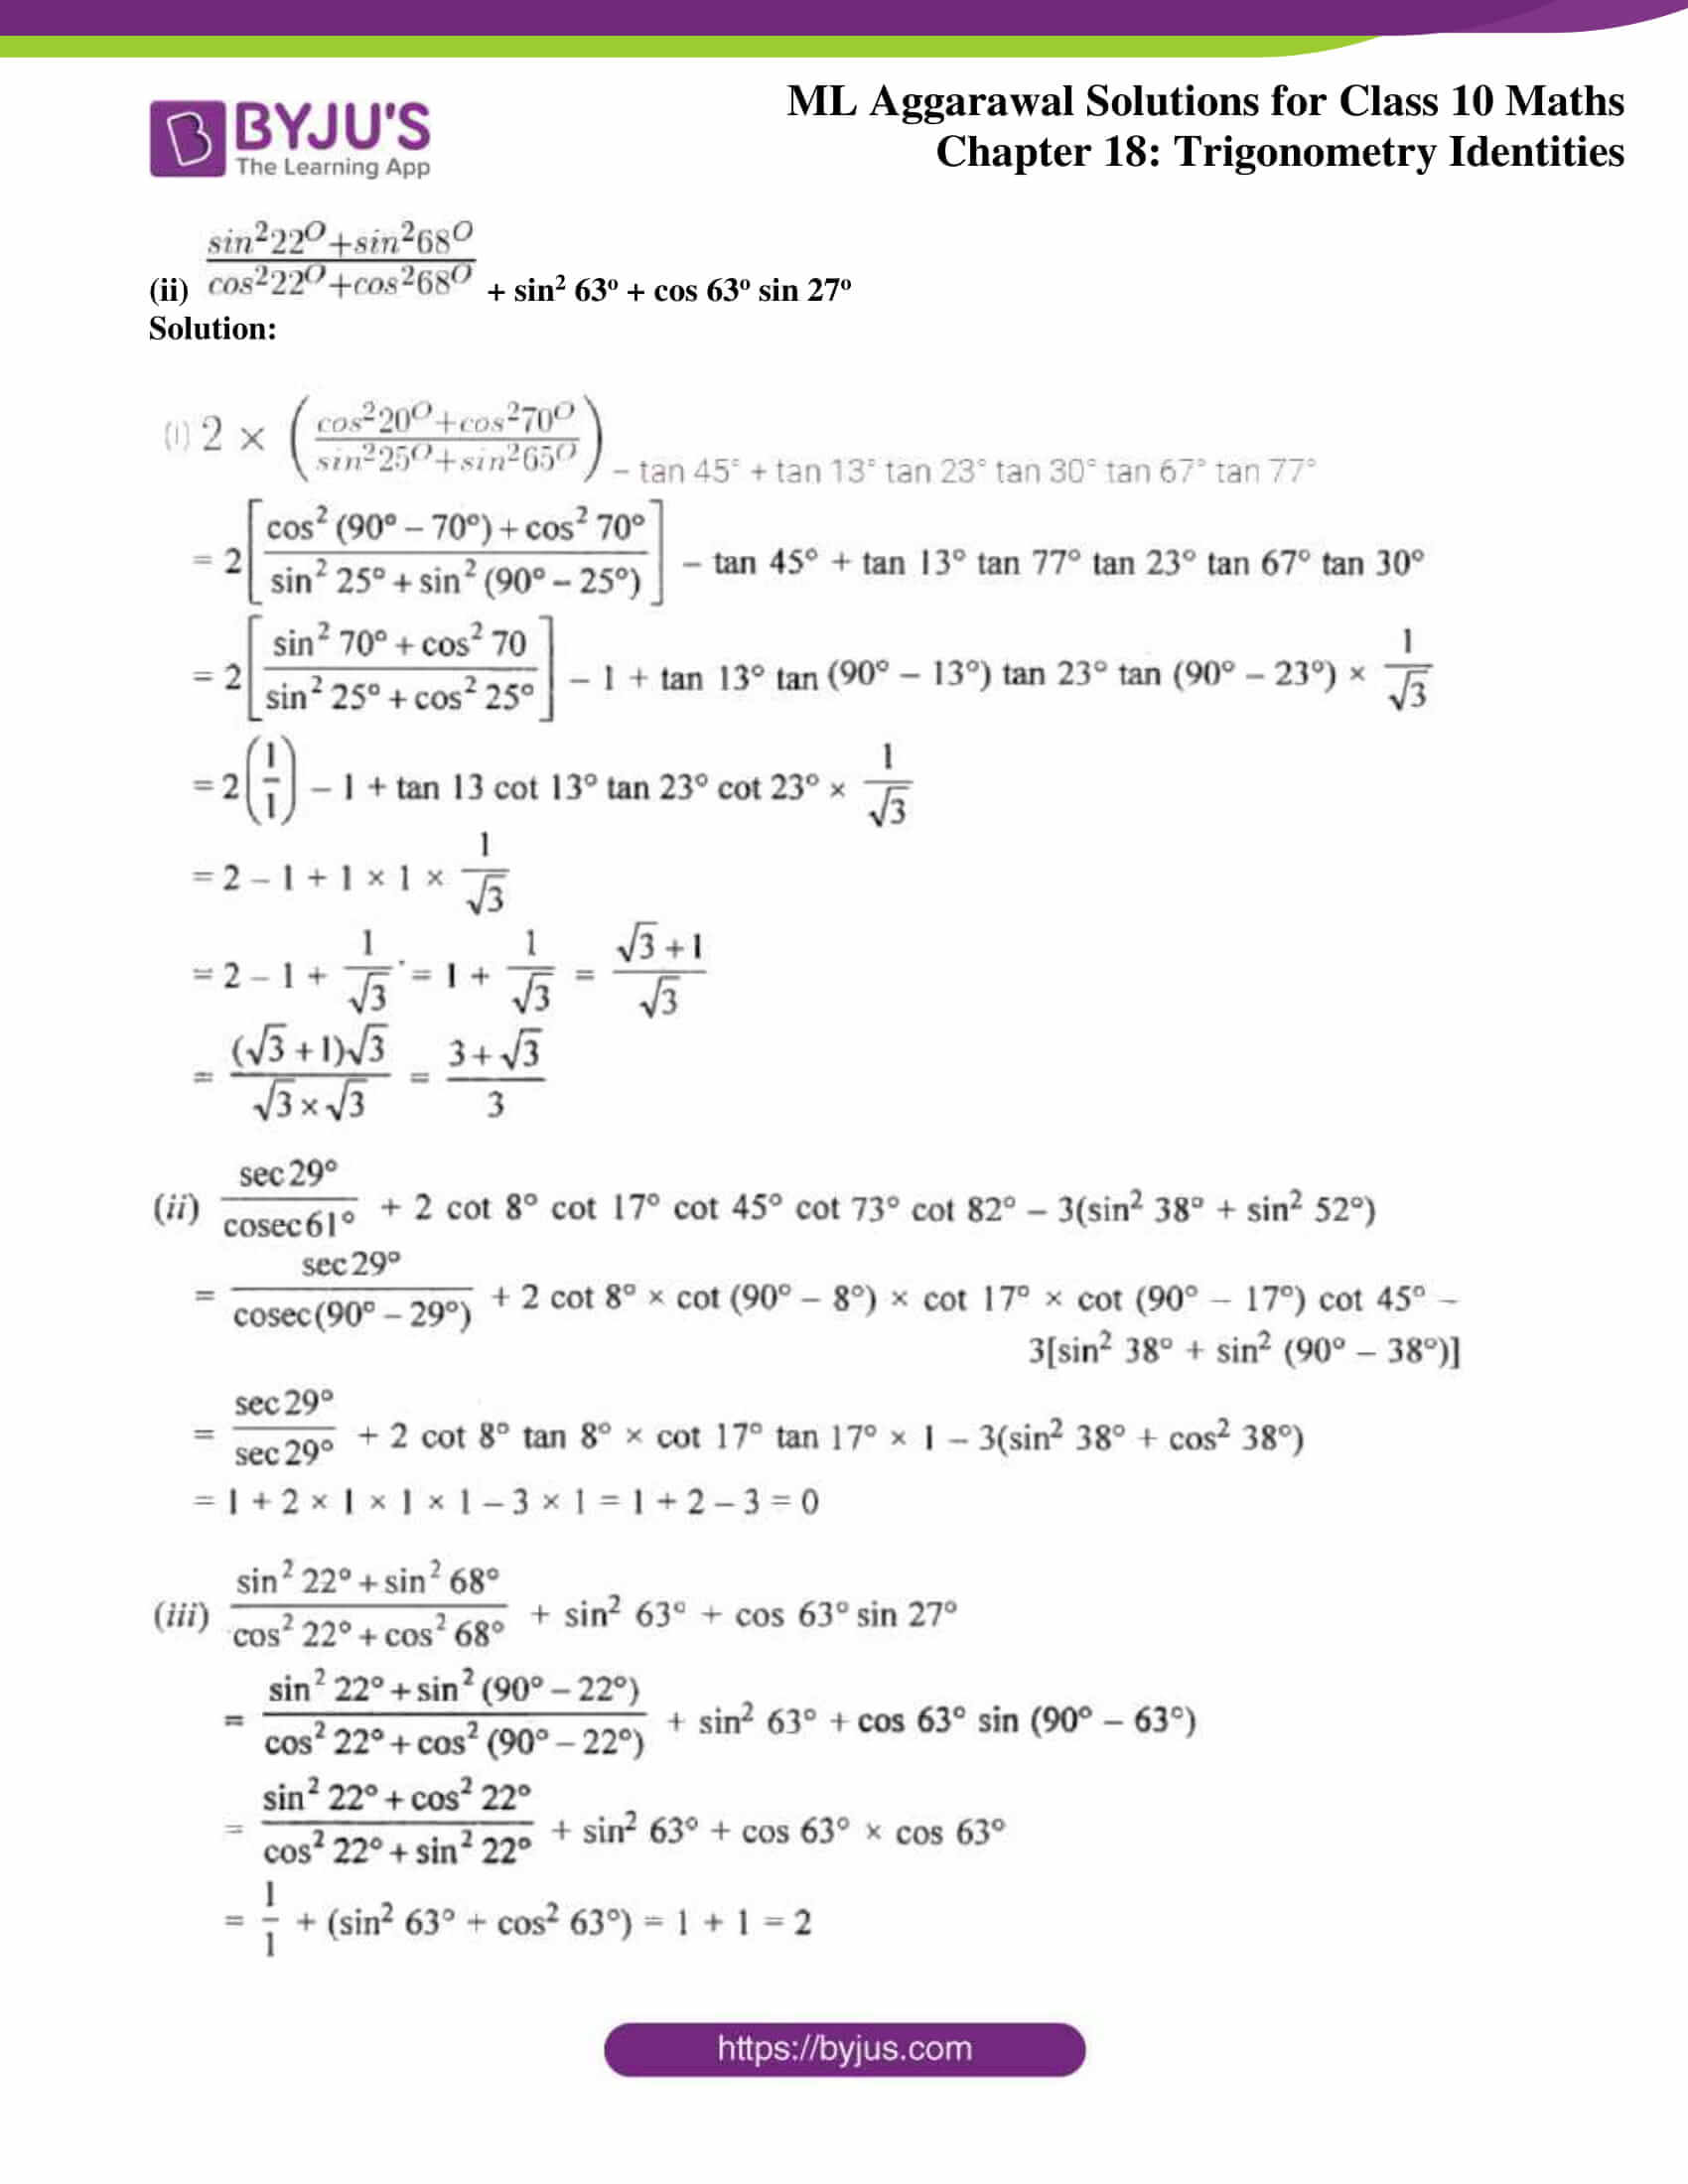 ml aggarwal solutions for class 10 maths chapter 18 28